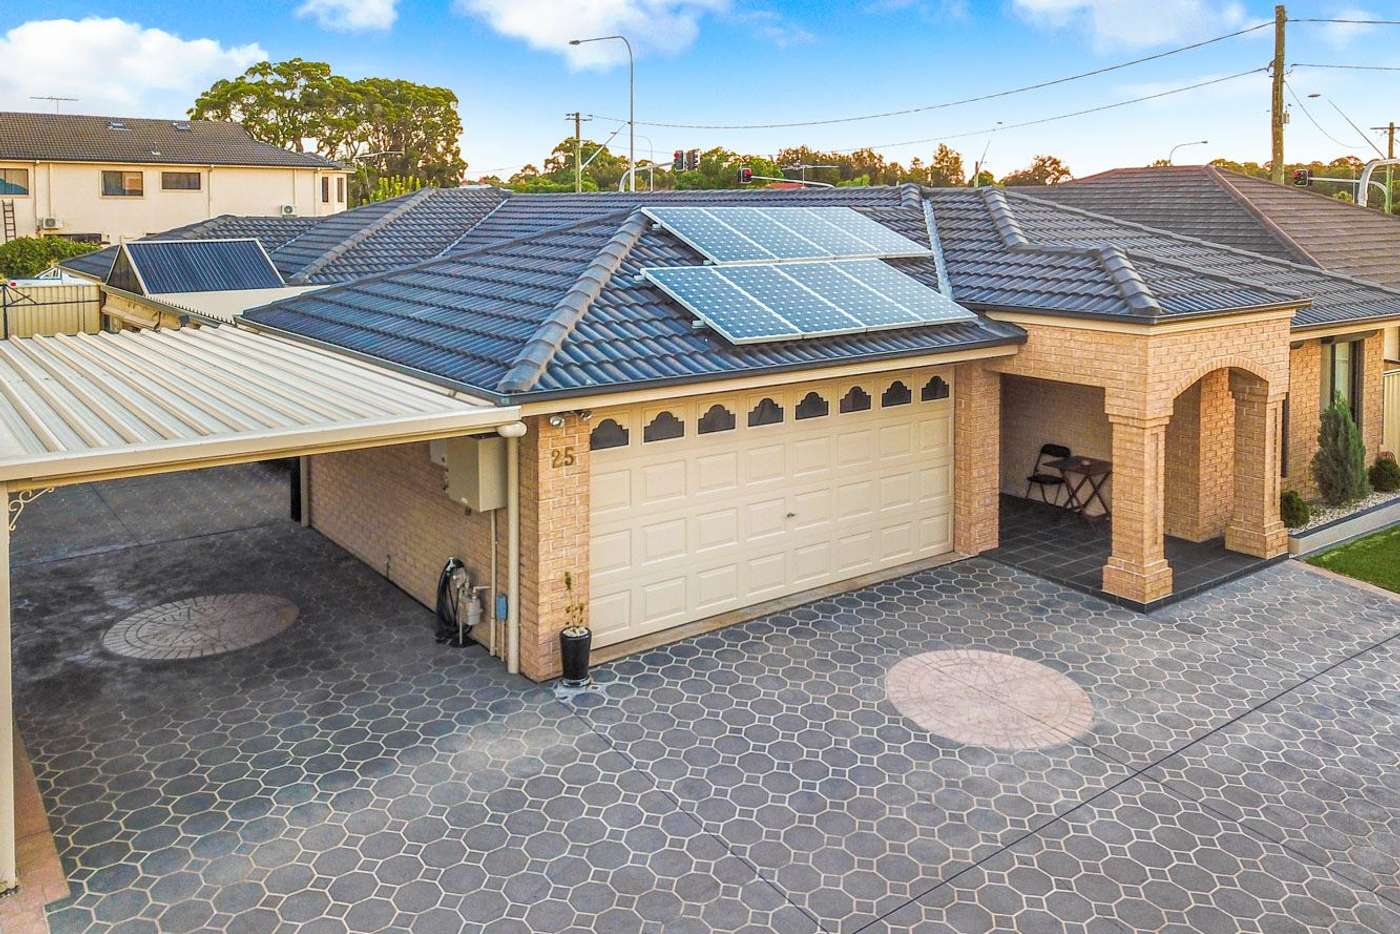 Main view of Homely house listing, 25 Granada Place, Oakhurst NSW 2761